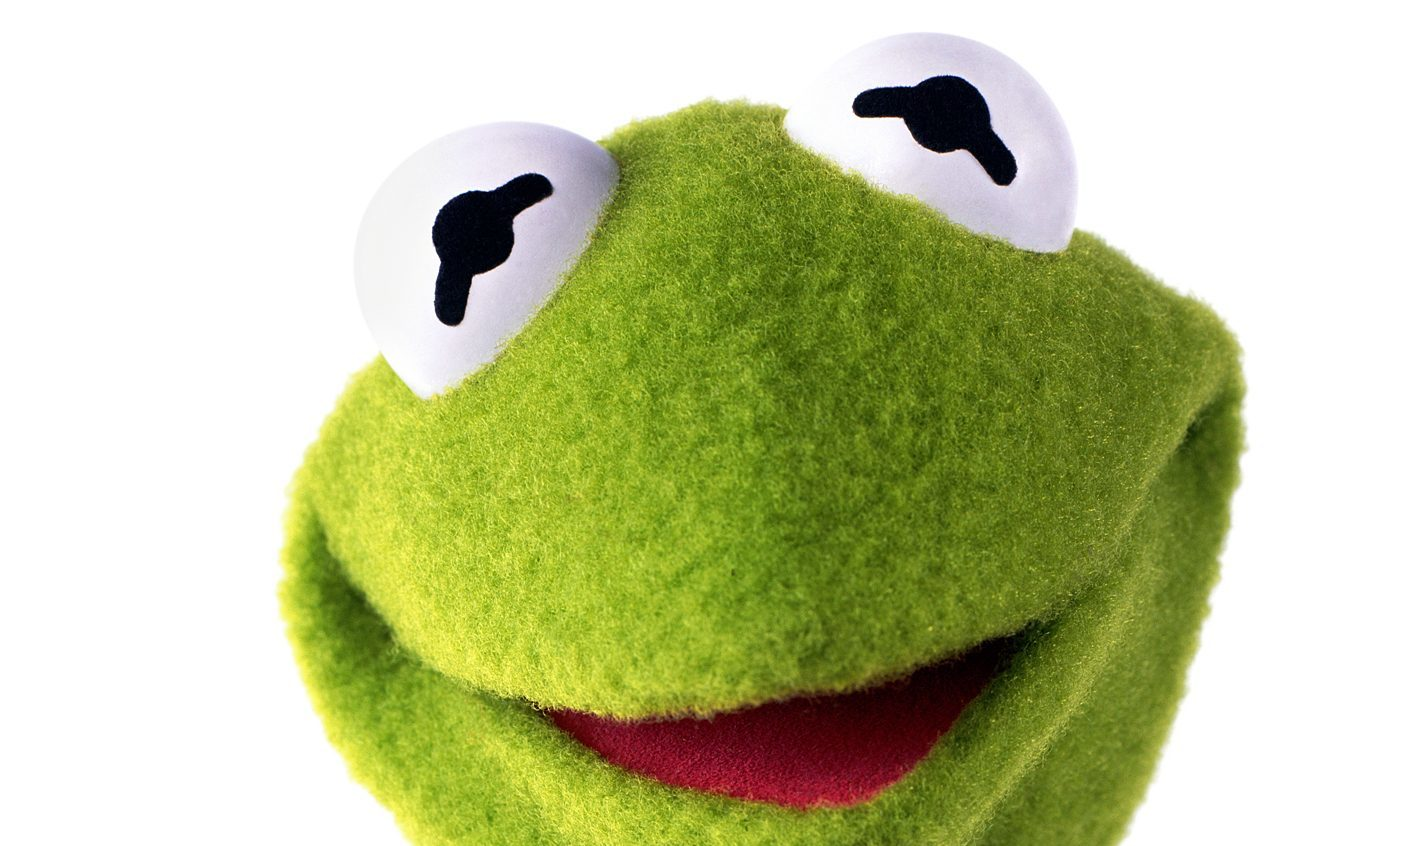 The lighthearted campaign argues that Kermit should be immortalised in Dundee